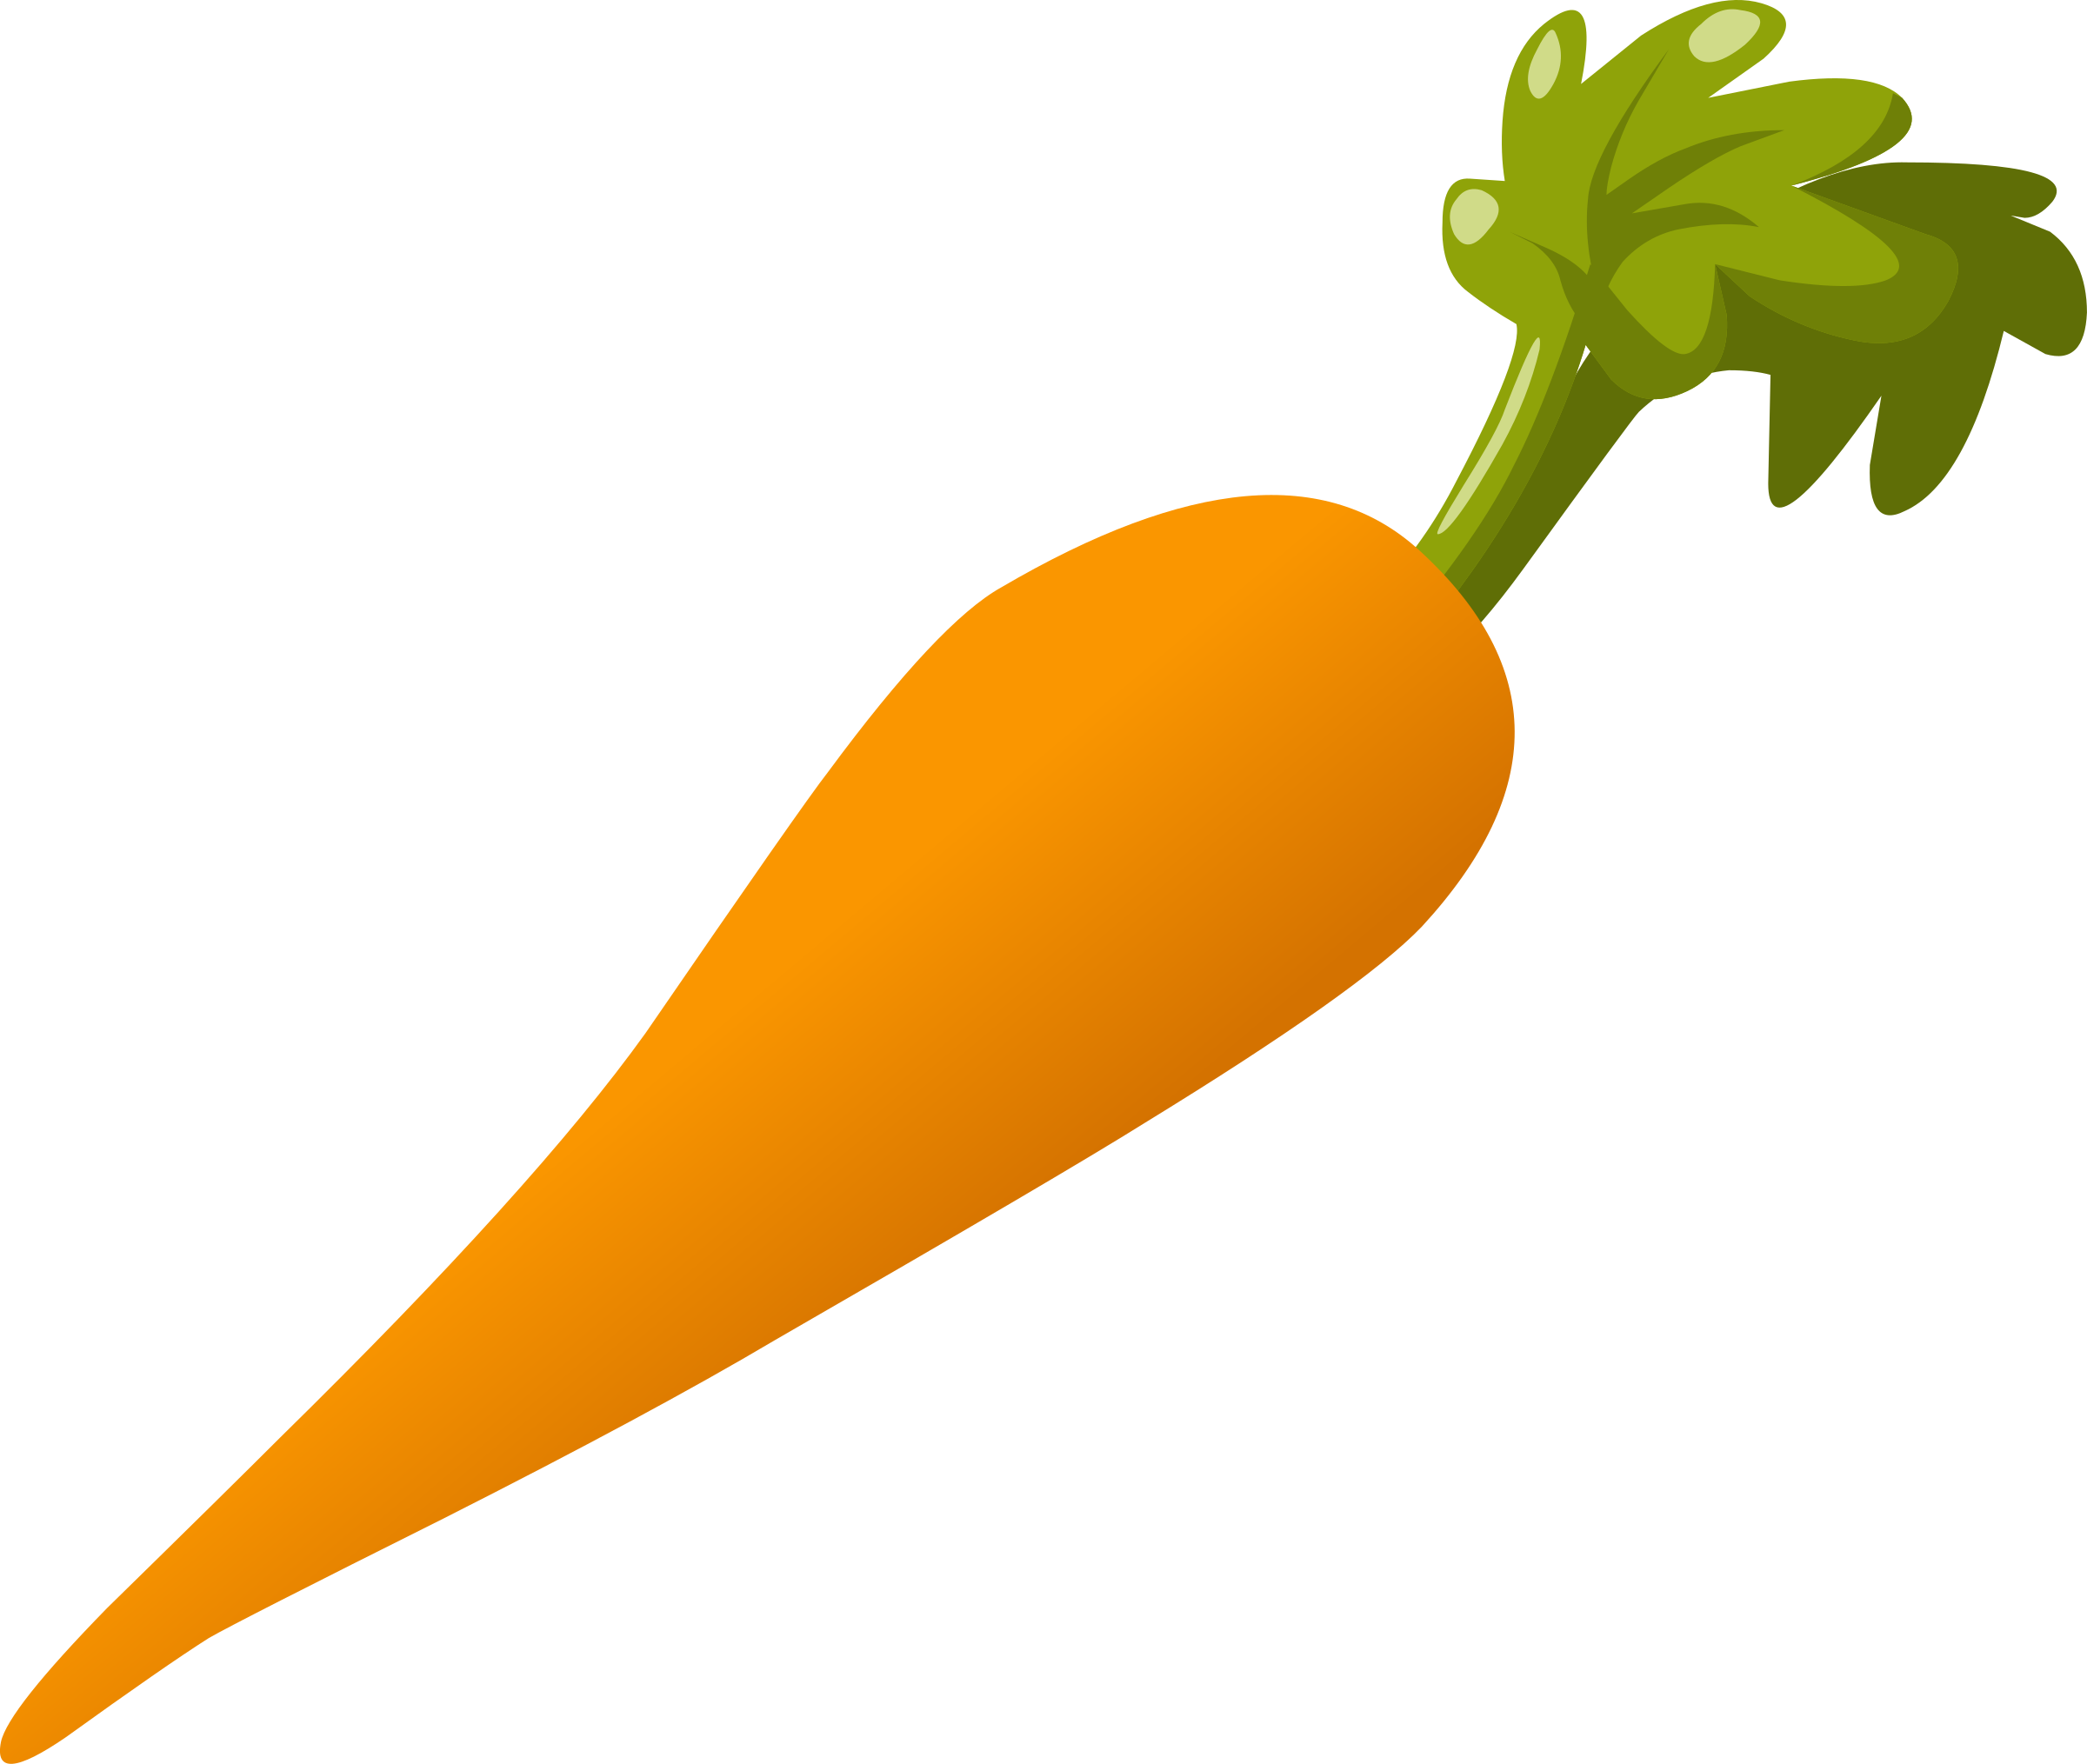 Food Carrot by glitch